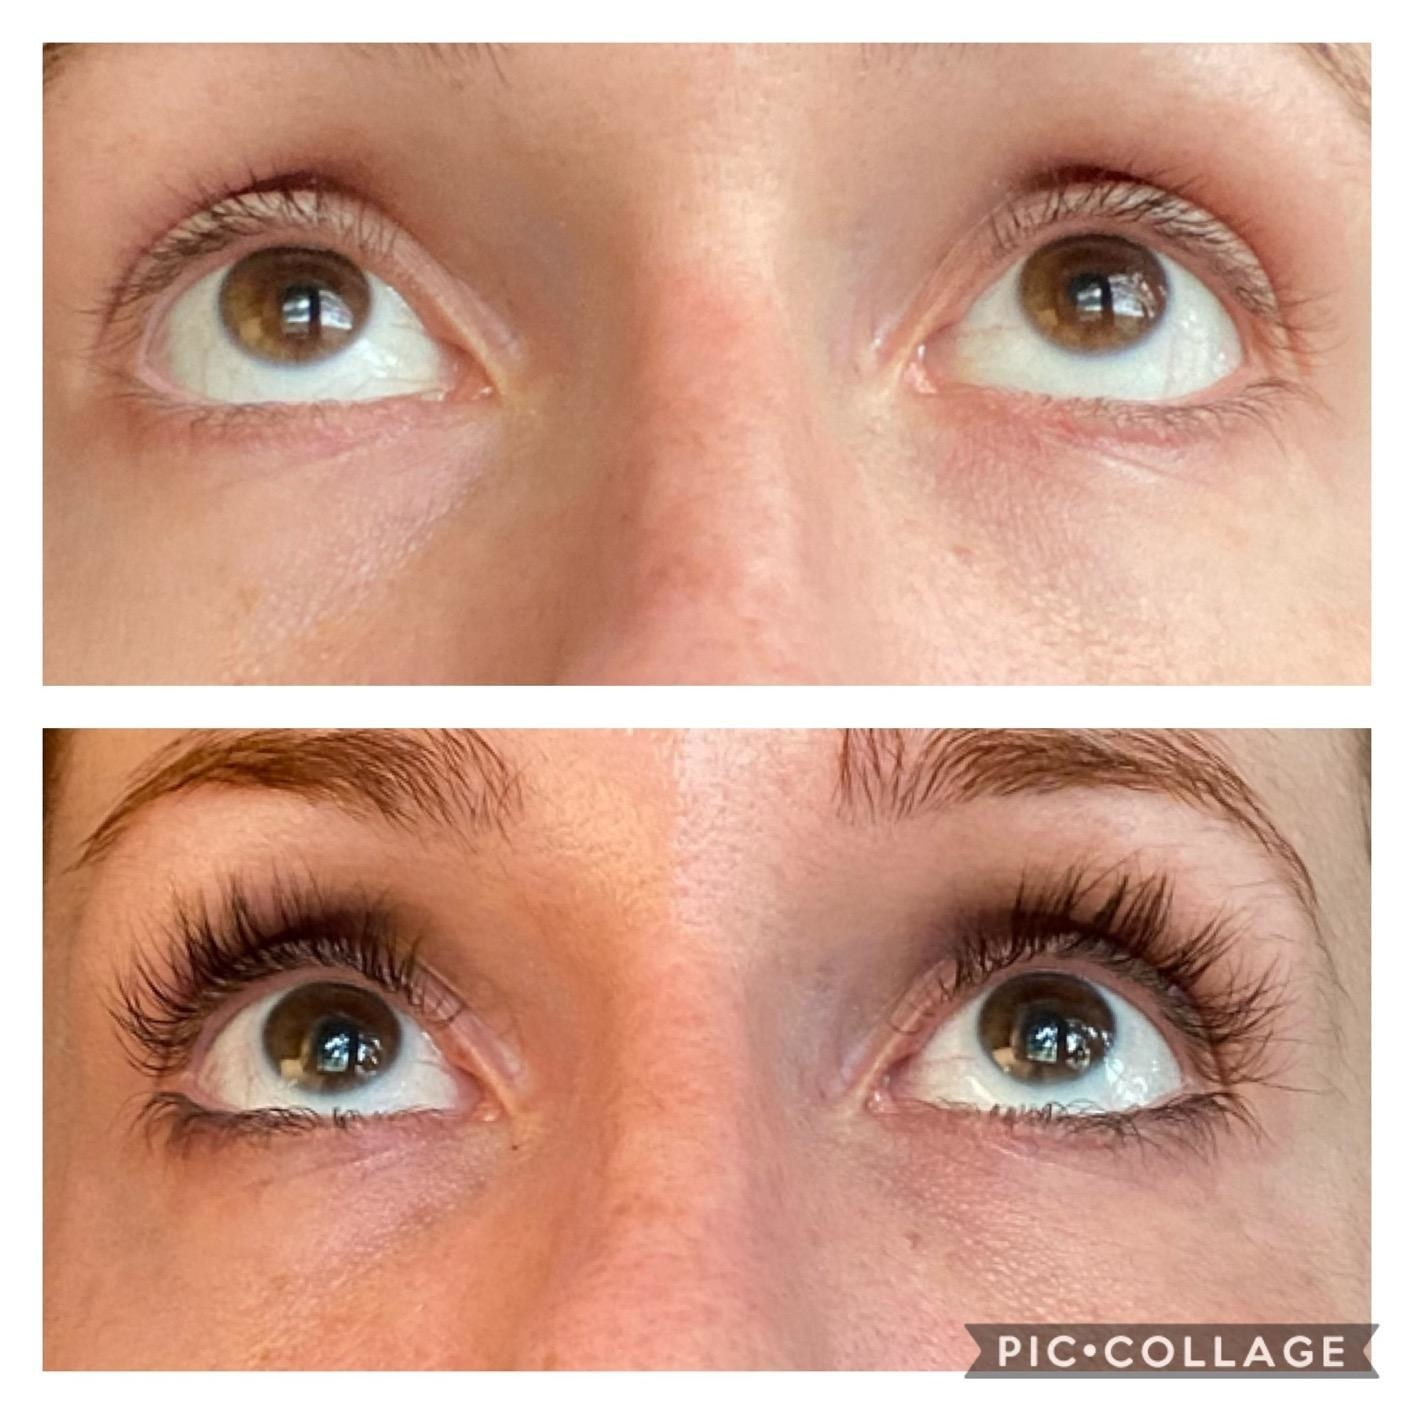 A before/after of a reviewer's lashes, looking much fuller and longer after